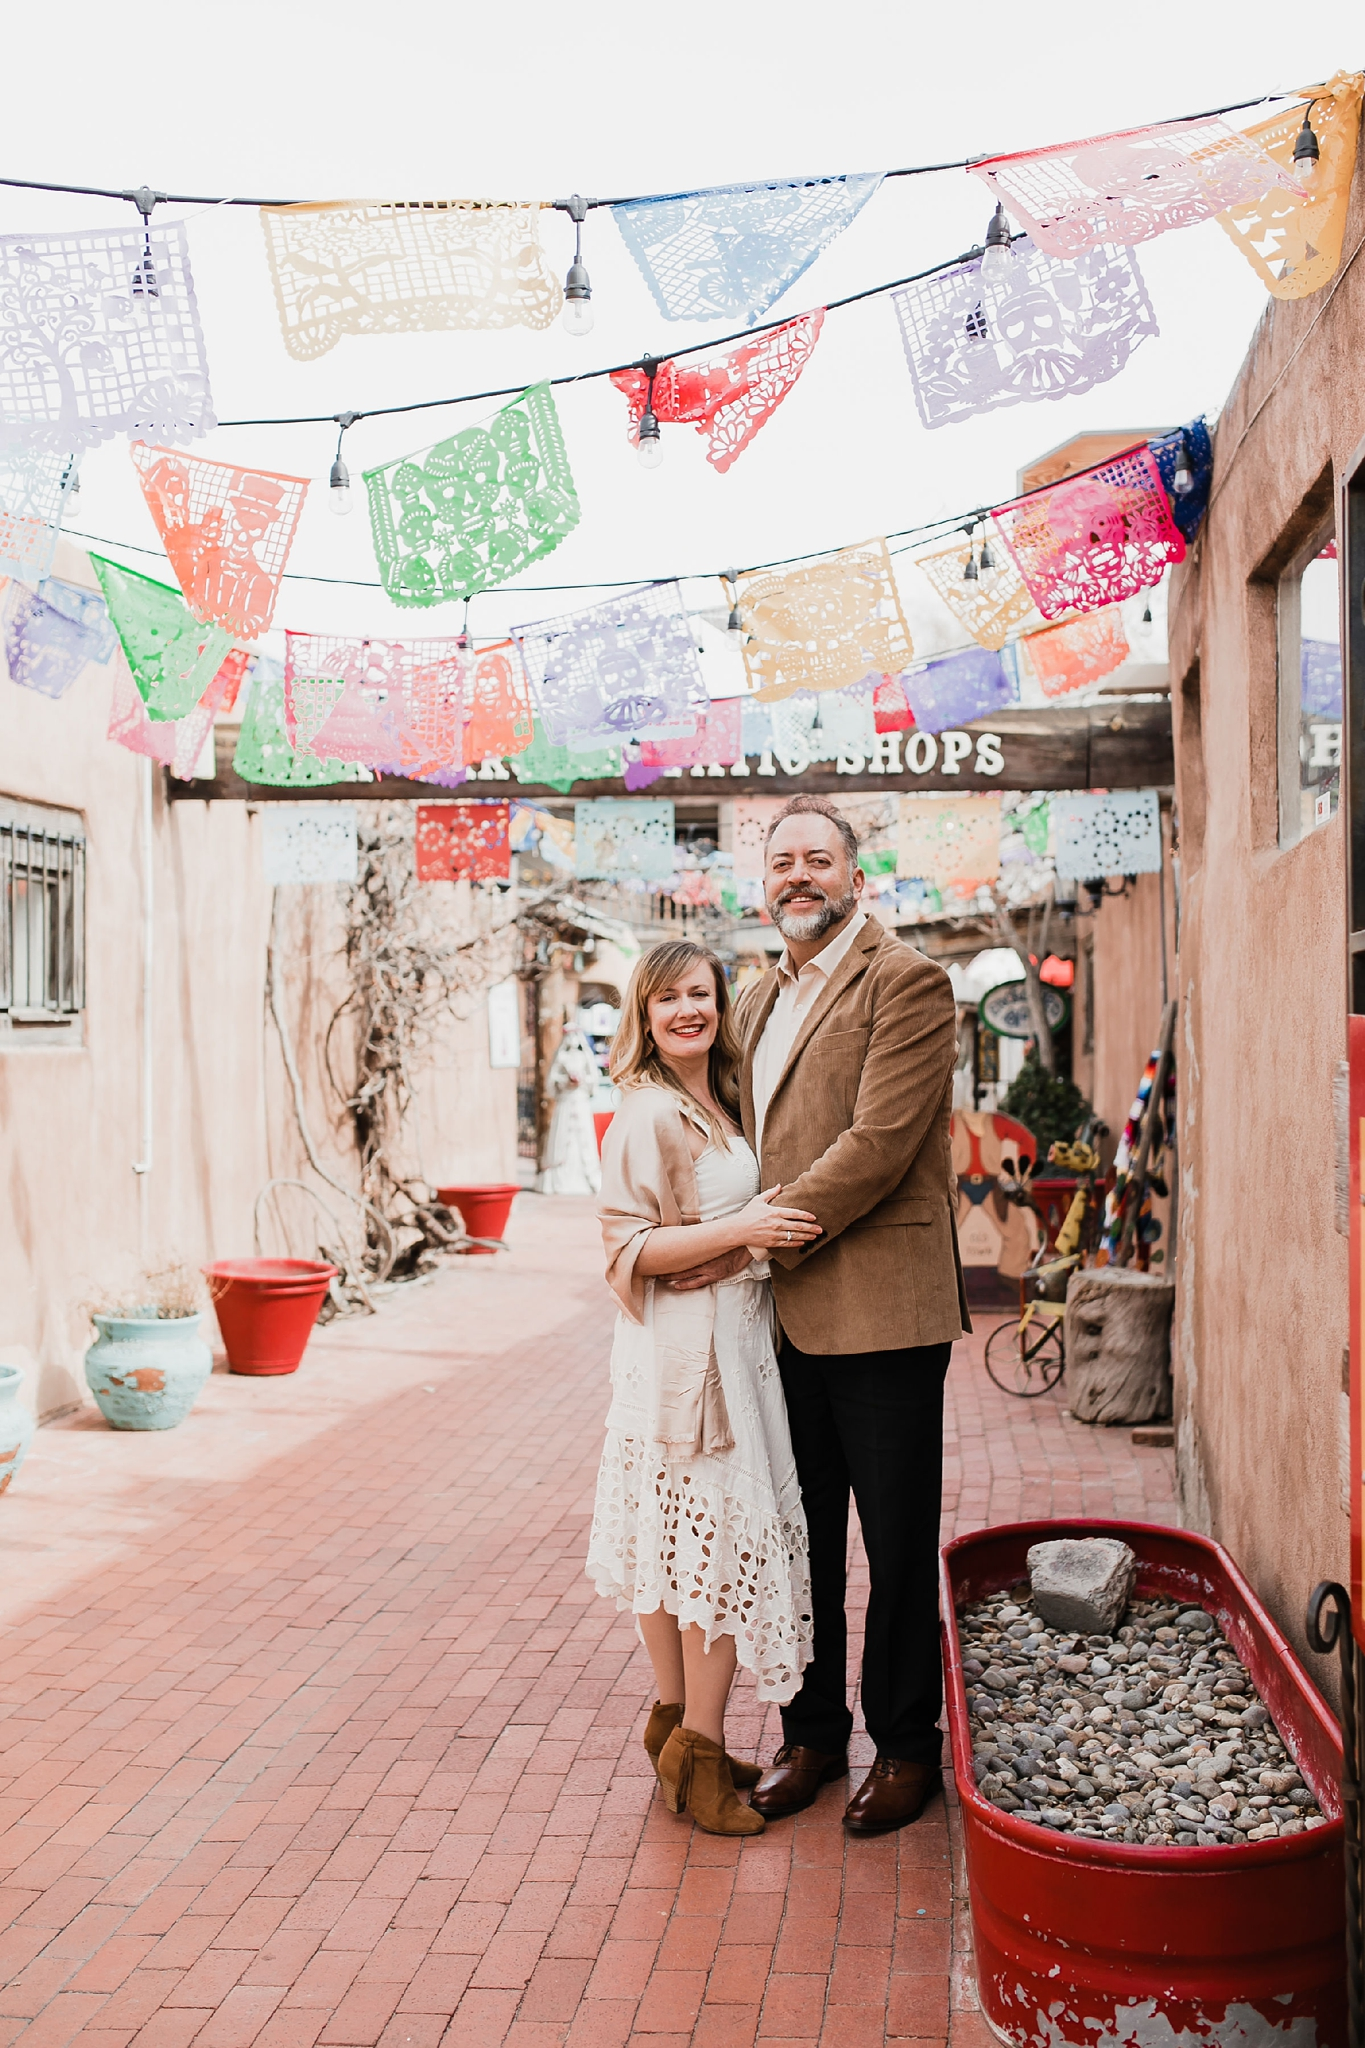 Alicia+lucia+photography+-+albuquerque+wedding+photographer+-+santa+fe+wedding+photography+-+new+mexico+wedding+photographer+-+new+mexico+engagement+-+albuquerque+engagement+-+old+town+engagement_0002.jpg